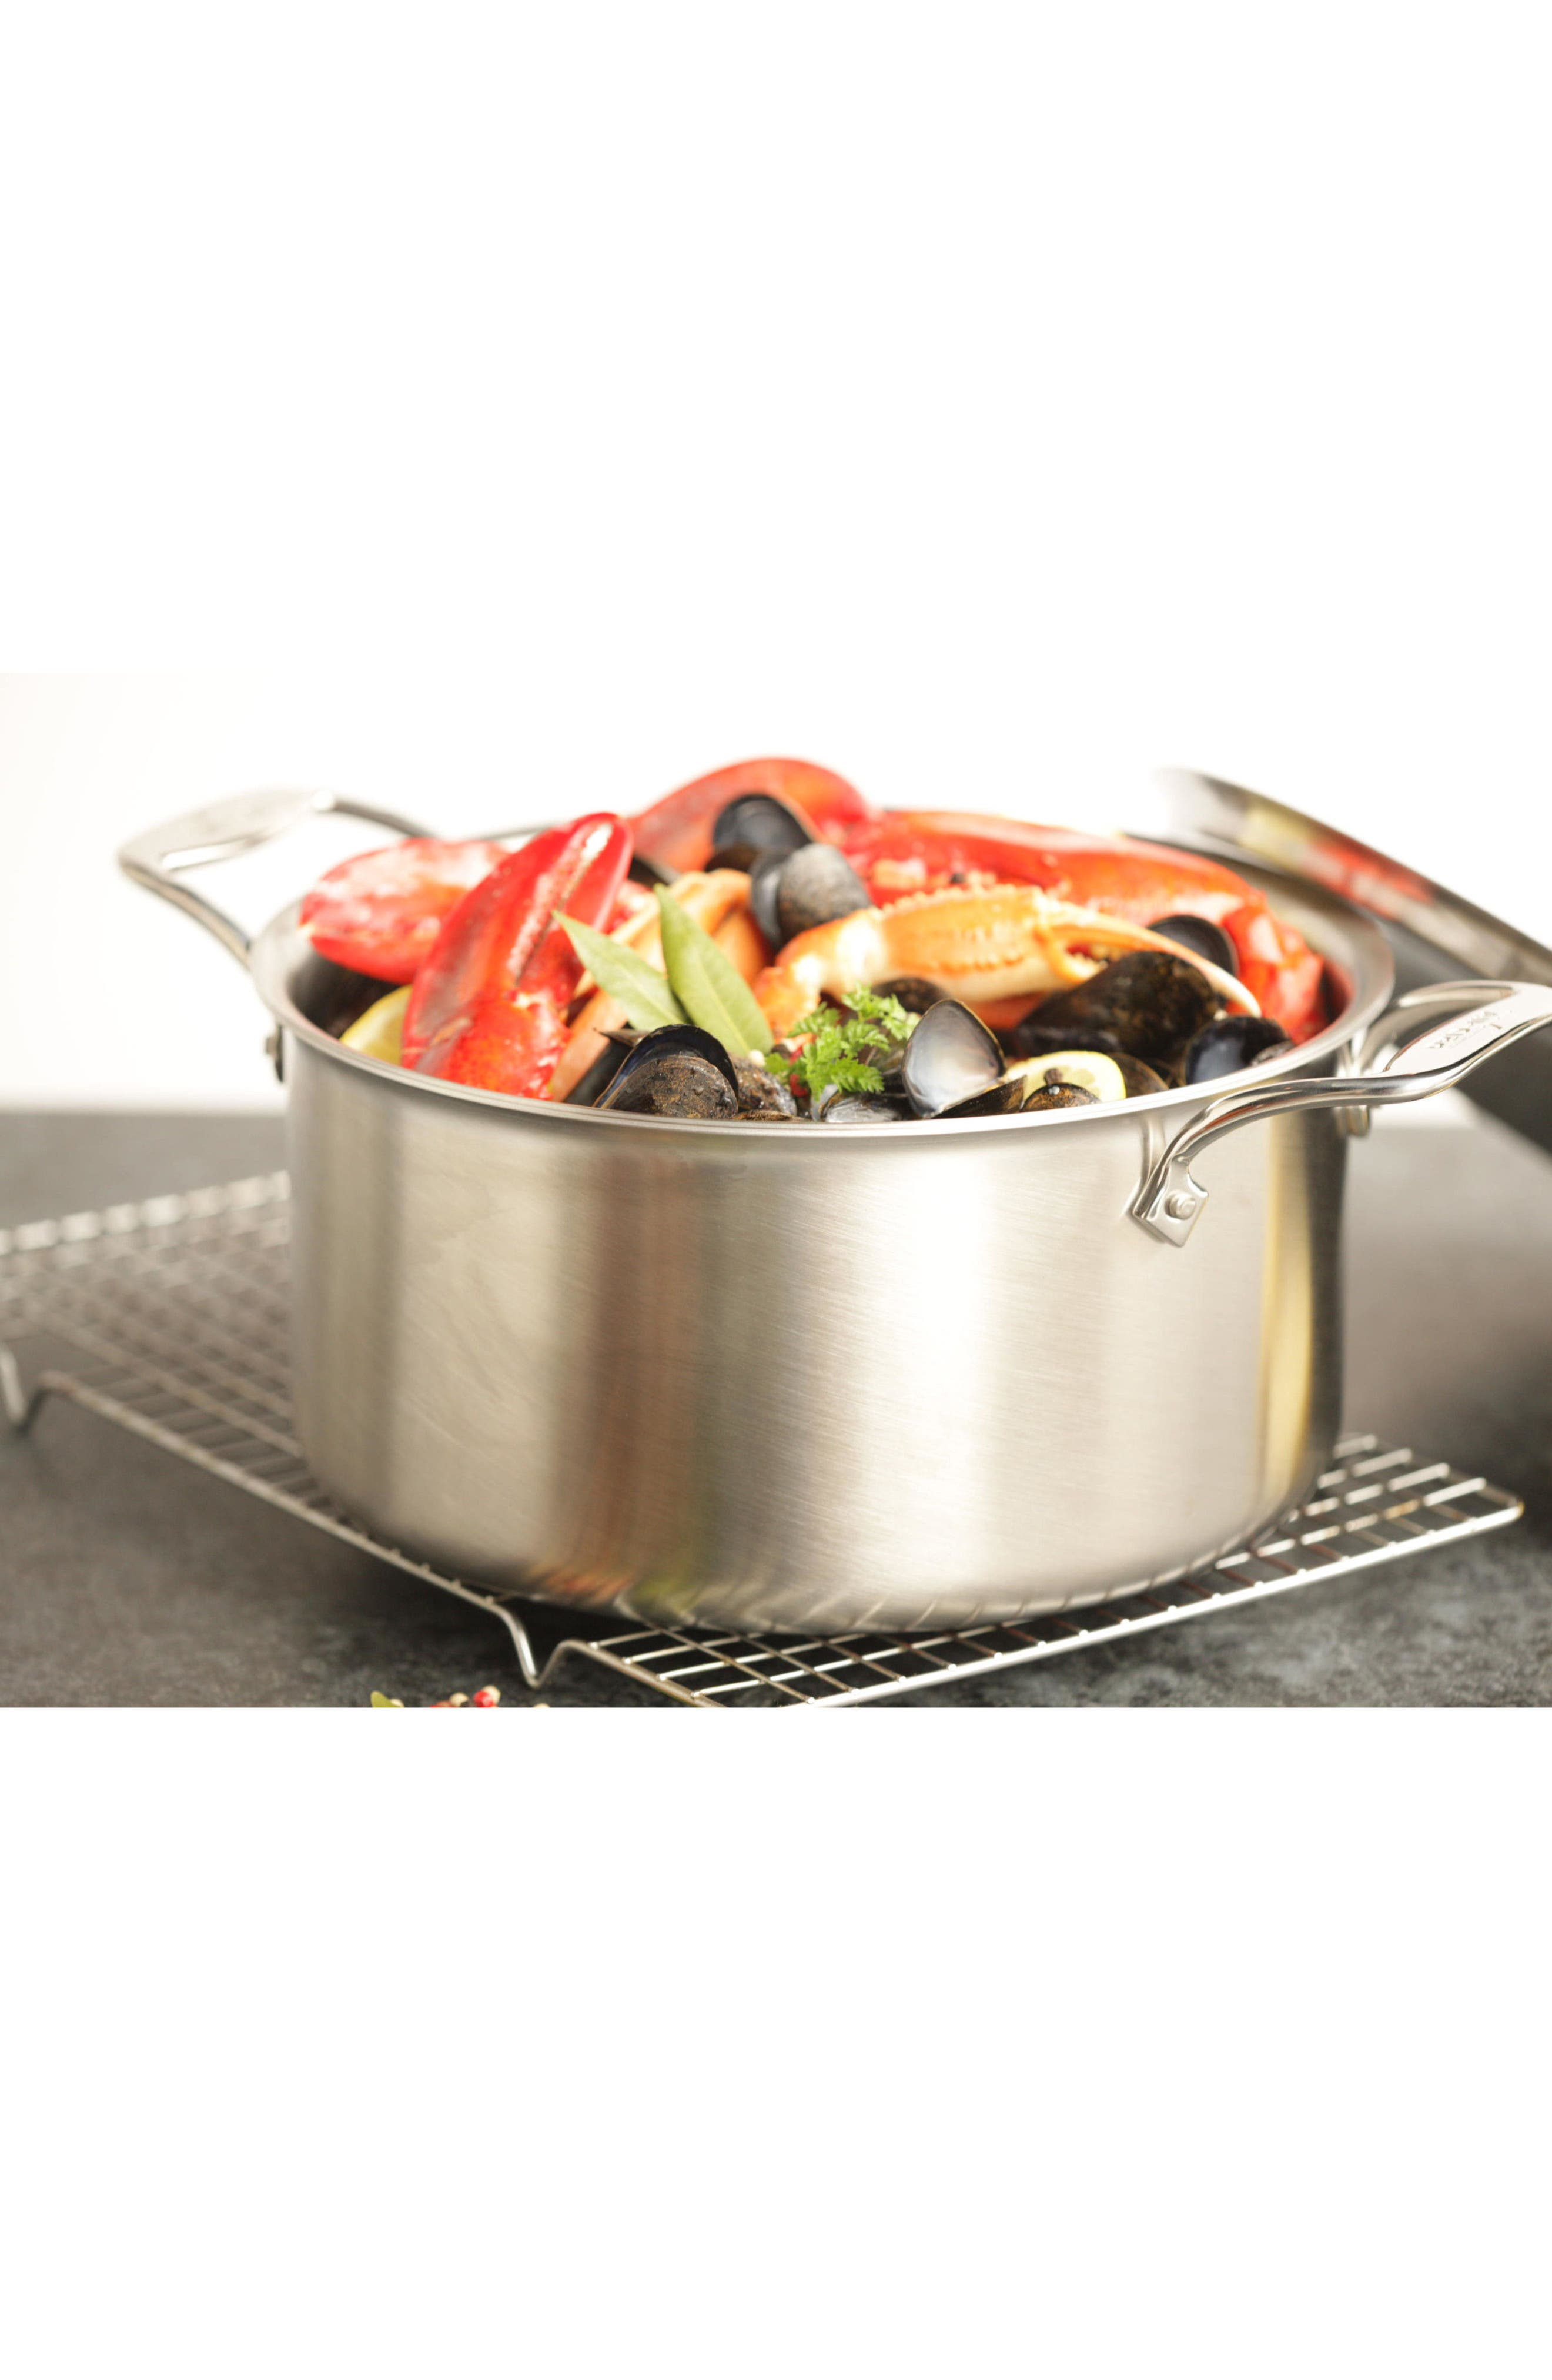 4-Quart Stainless Steel Soup Pot,                             Alternate thumbnail 2, color,                             Stainless